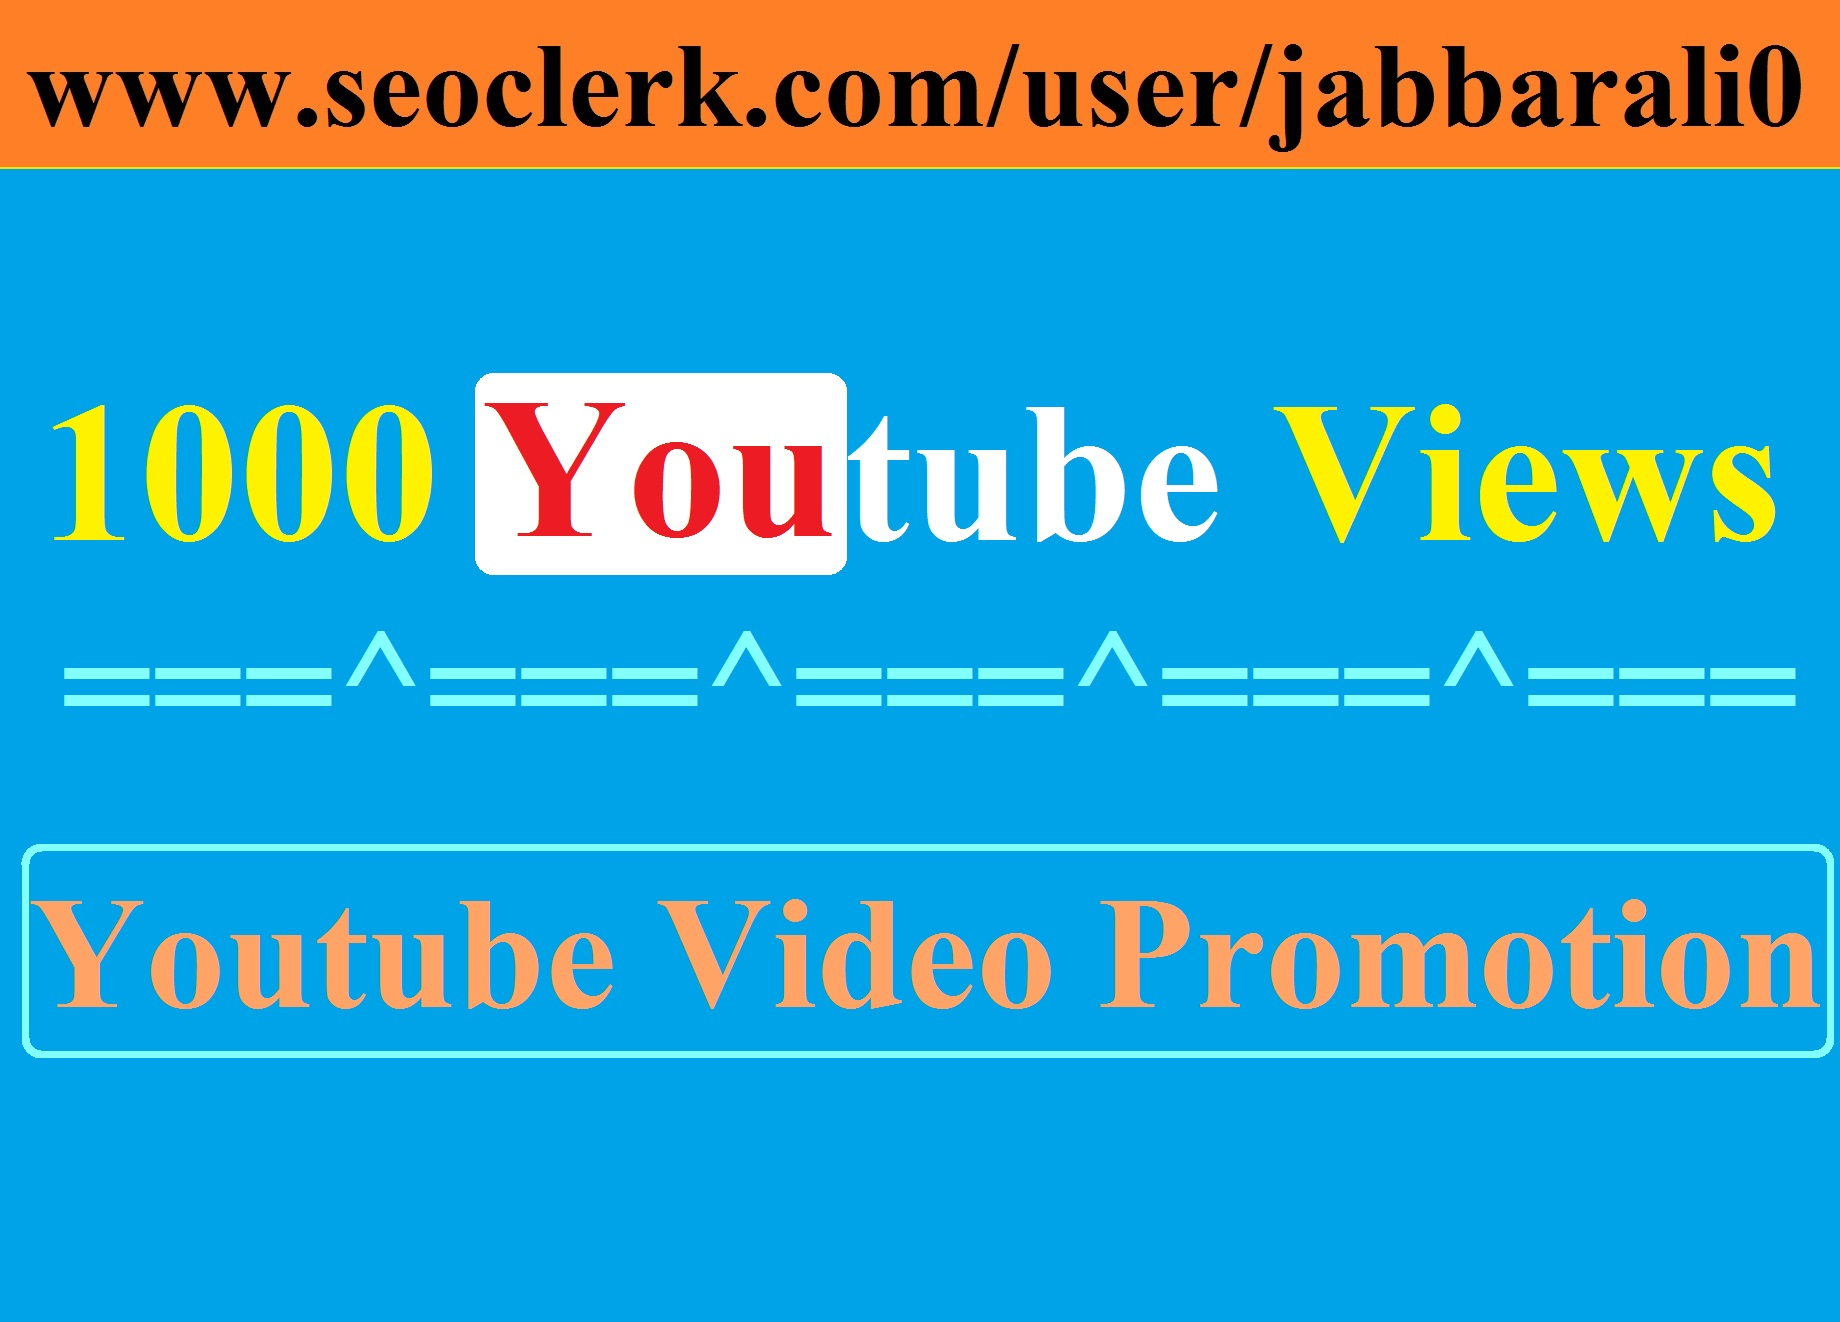 2000 VlEWS and 20 LlKE for YOUTUBE VIDEO PROMOTION